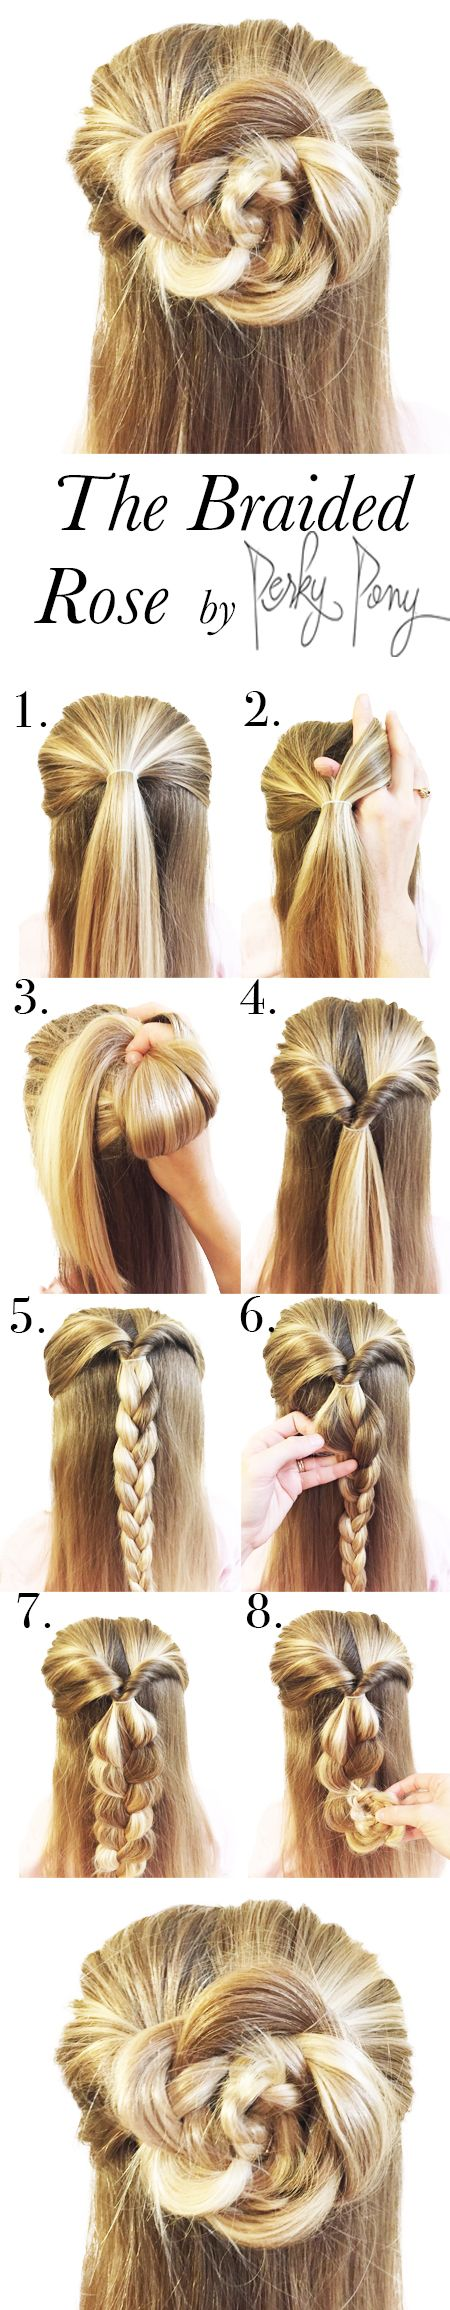 12 simple and simple hairstyles for your daily look